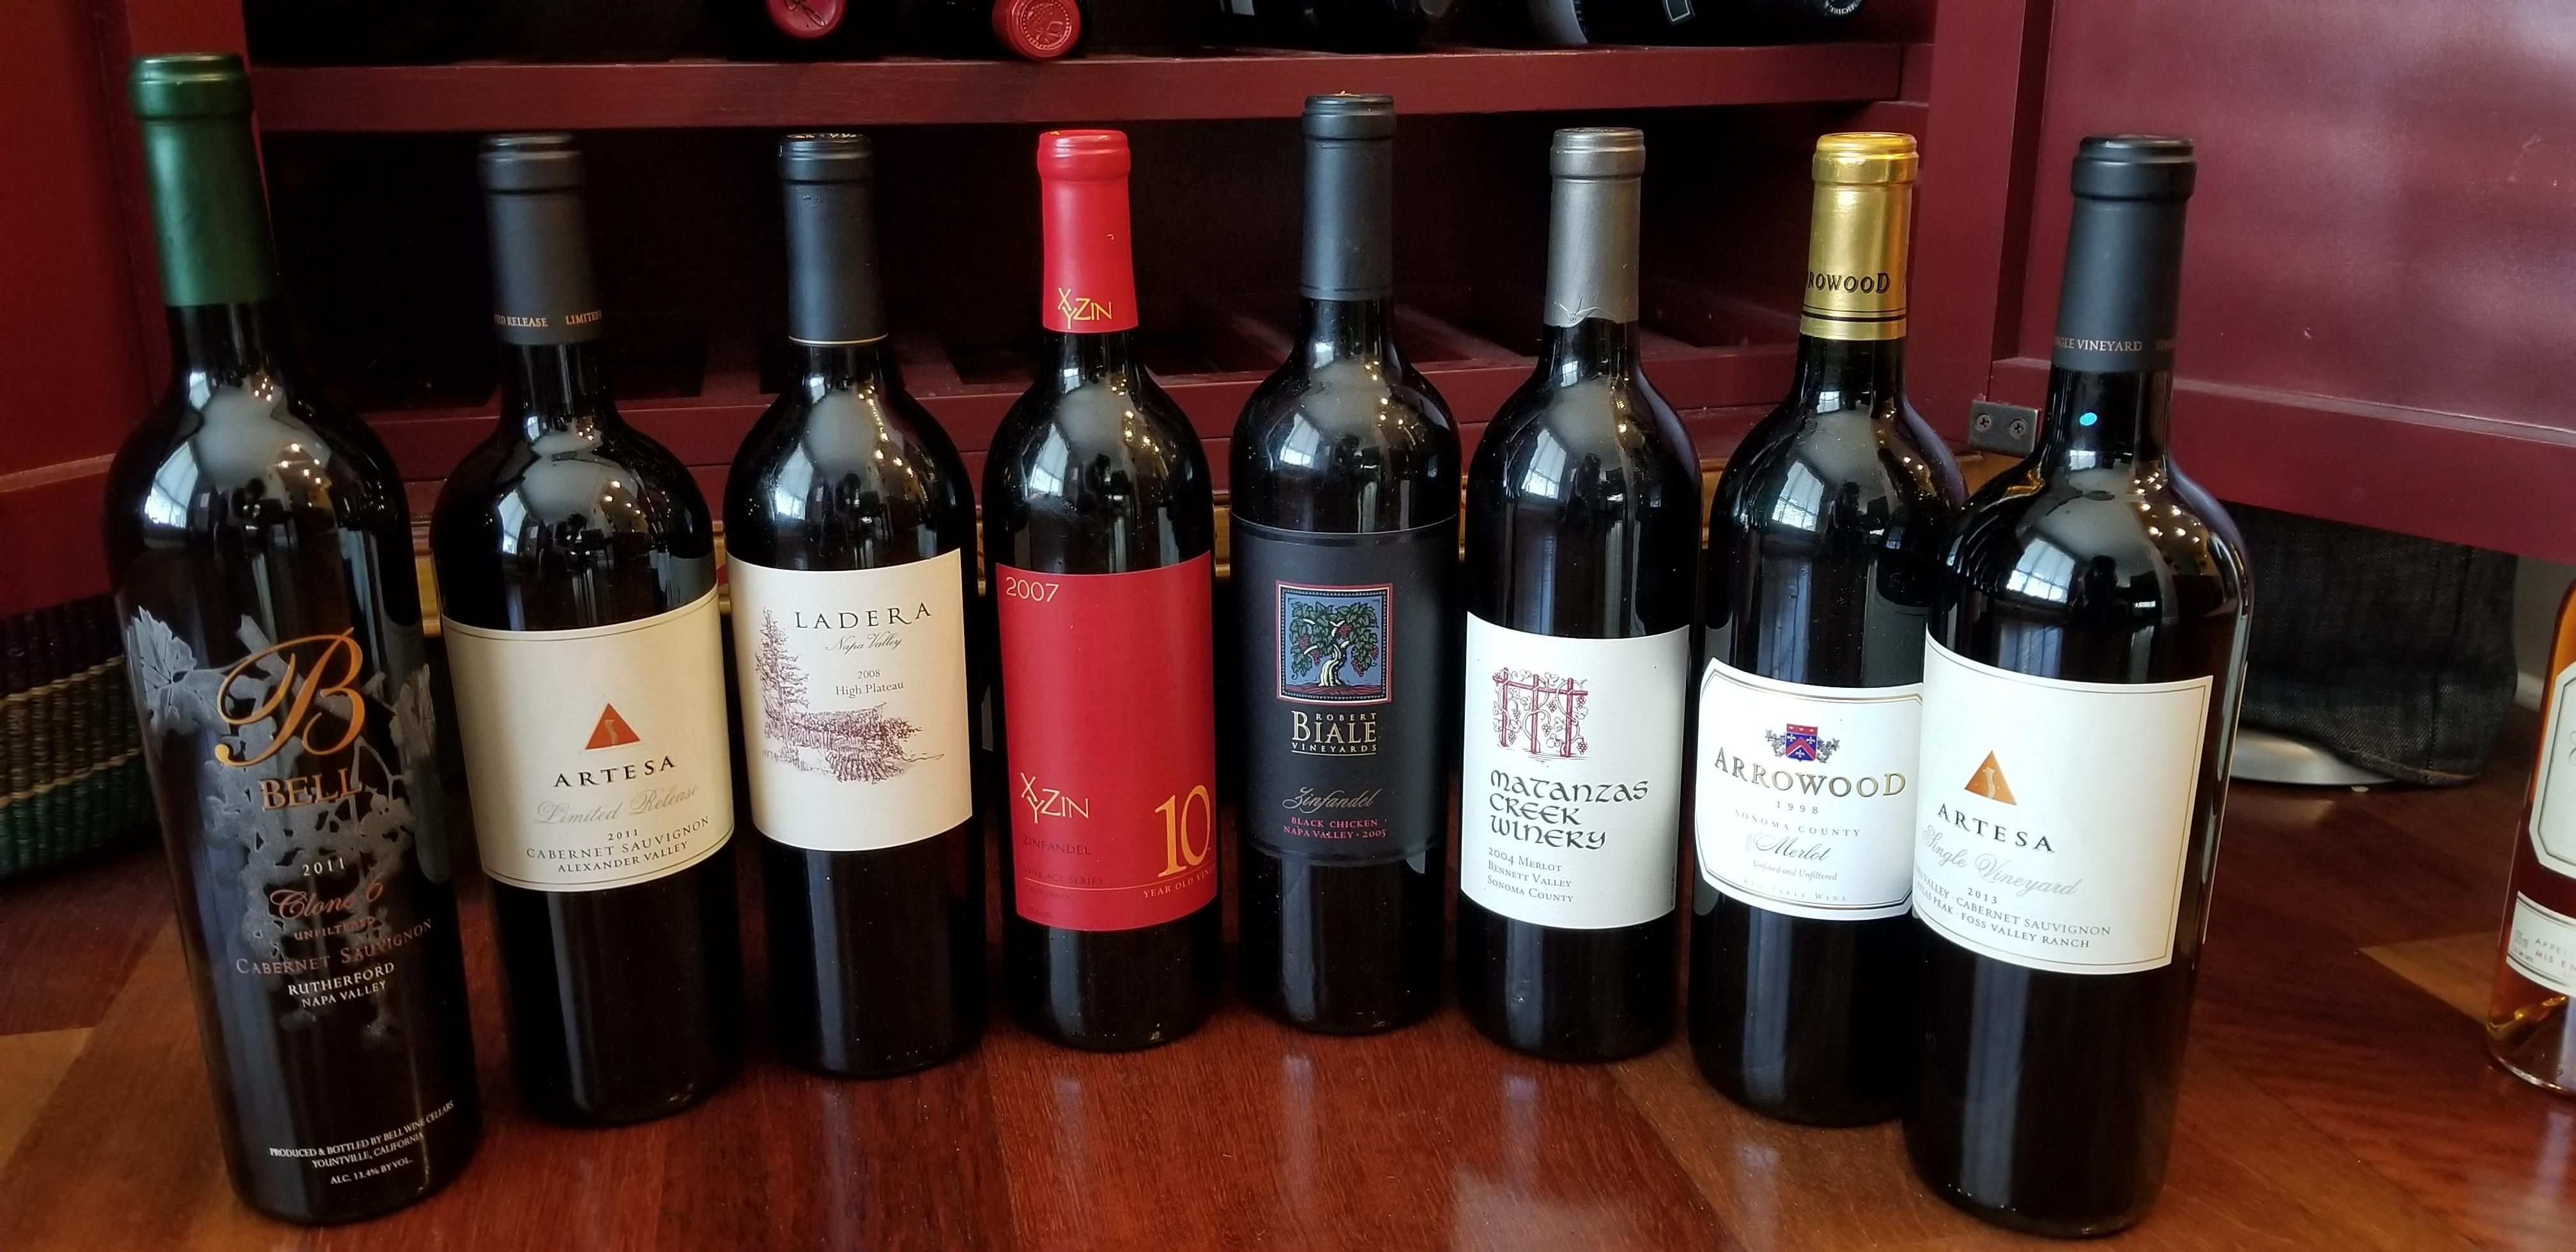 I M Down To My Bottom Shelf Of Wine Which Includes Wine I Purchased Years Ago Which One Should I Open Next How Does One Know Whe In 2020 Wine Winemaking Wine